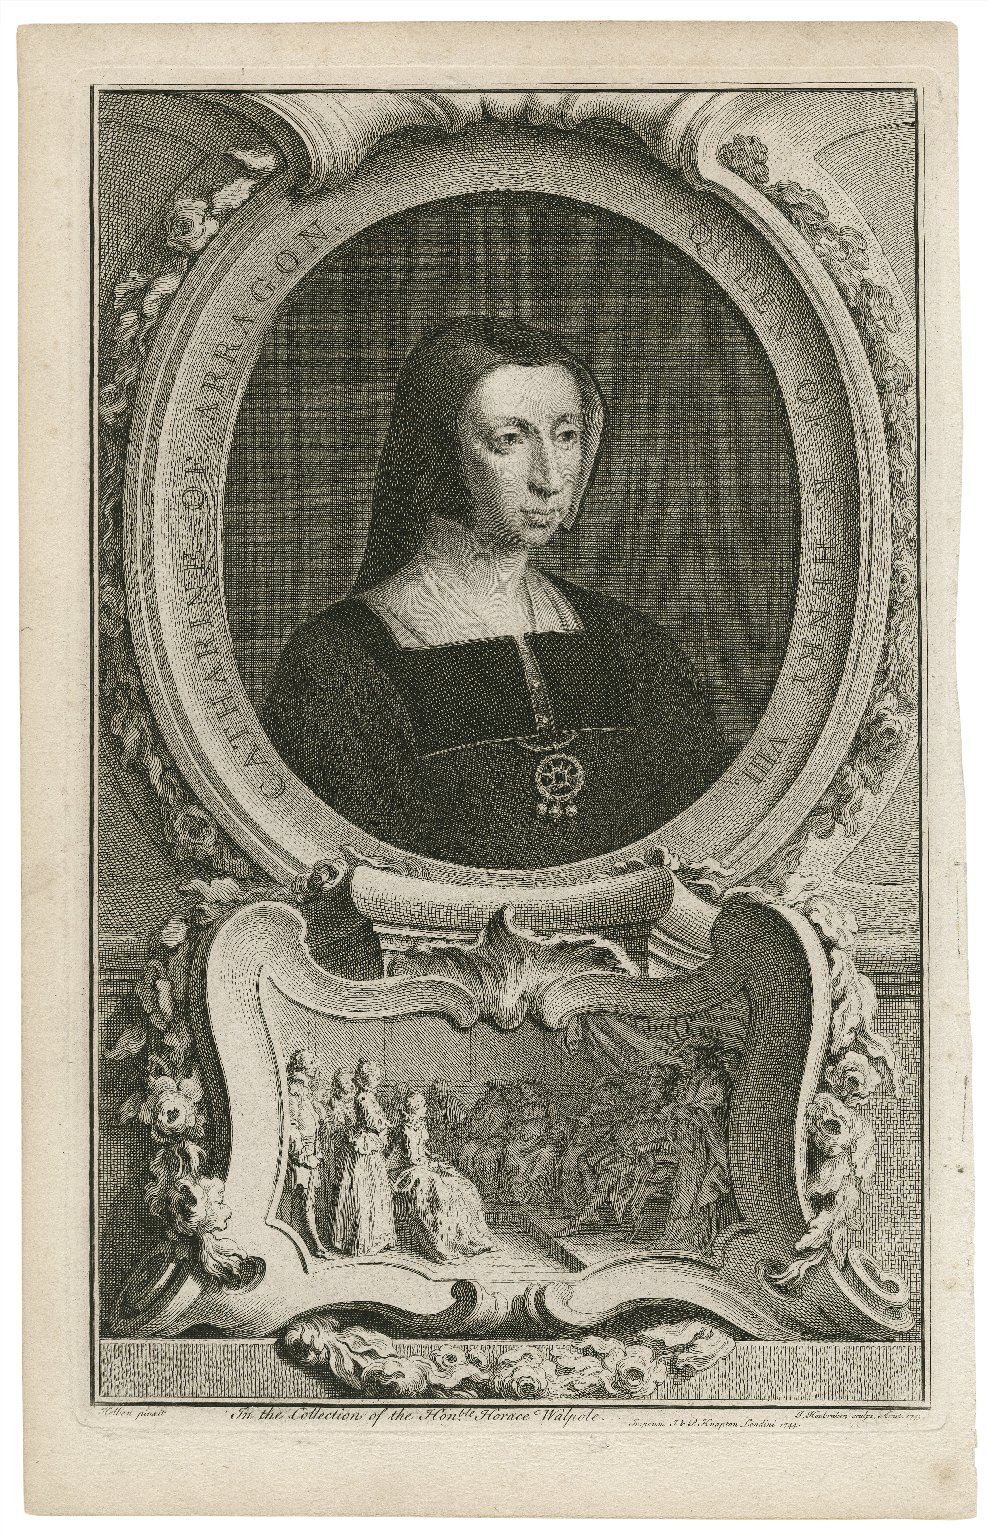 Catharine of Arragon, Queen of K. Henry VIII, in the collection of the Honble Horace Walpole [graphic] / Holben [sic] pinxit ; J. Houbraken sculps Amst. 1743.